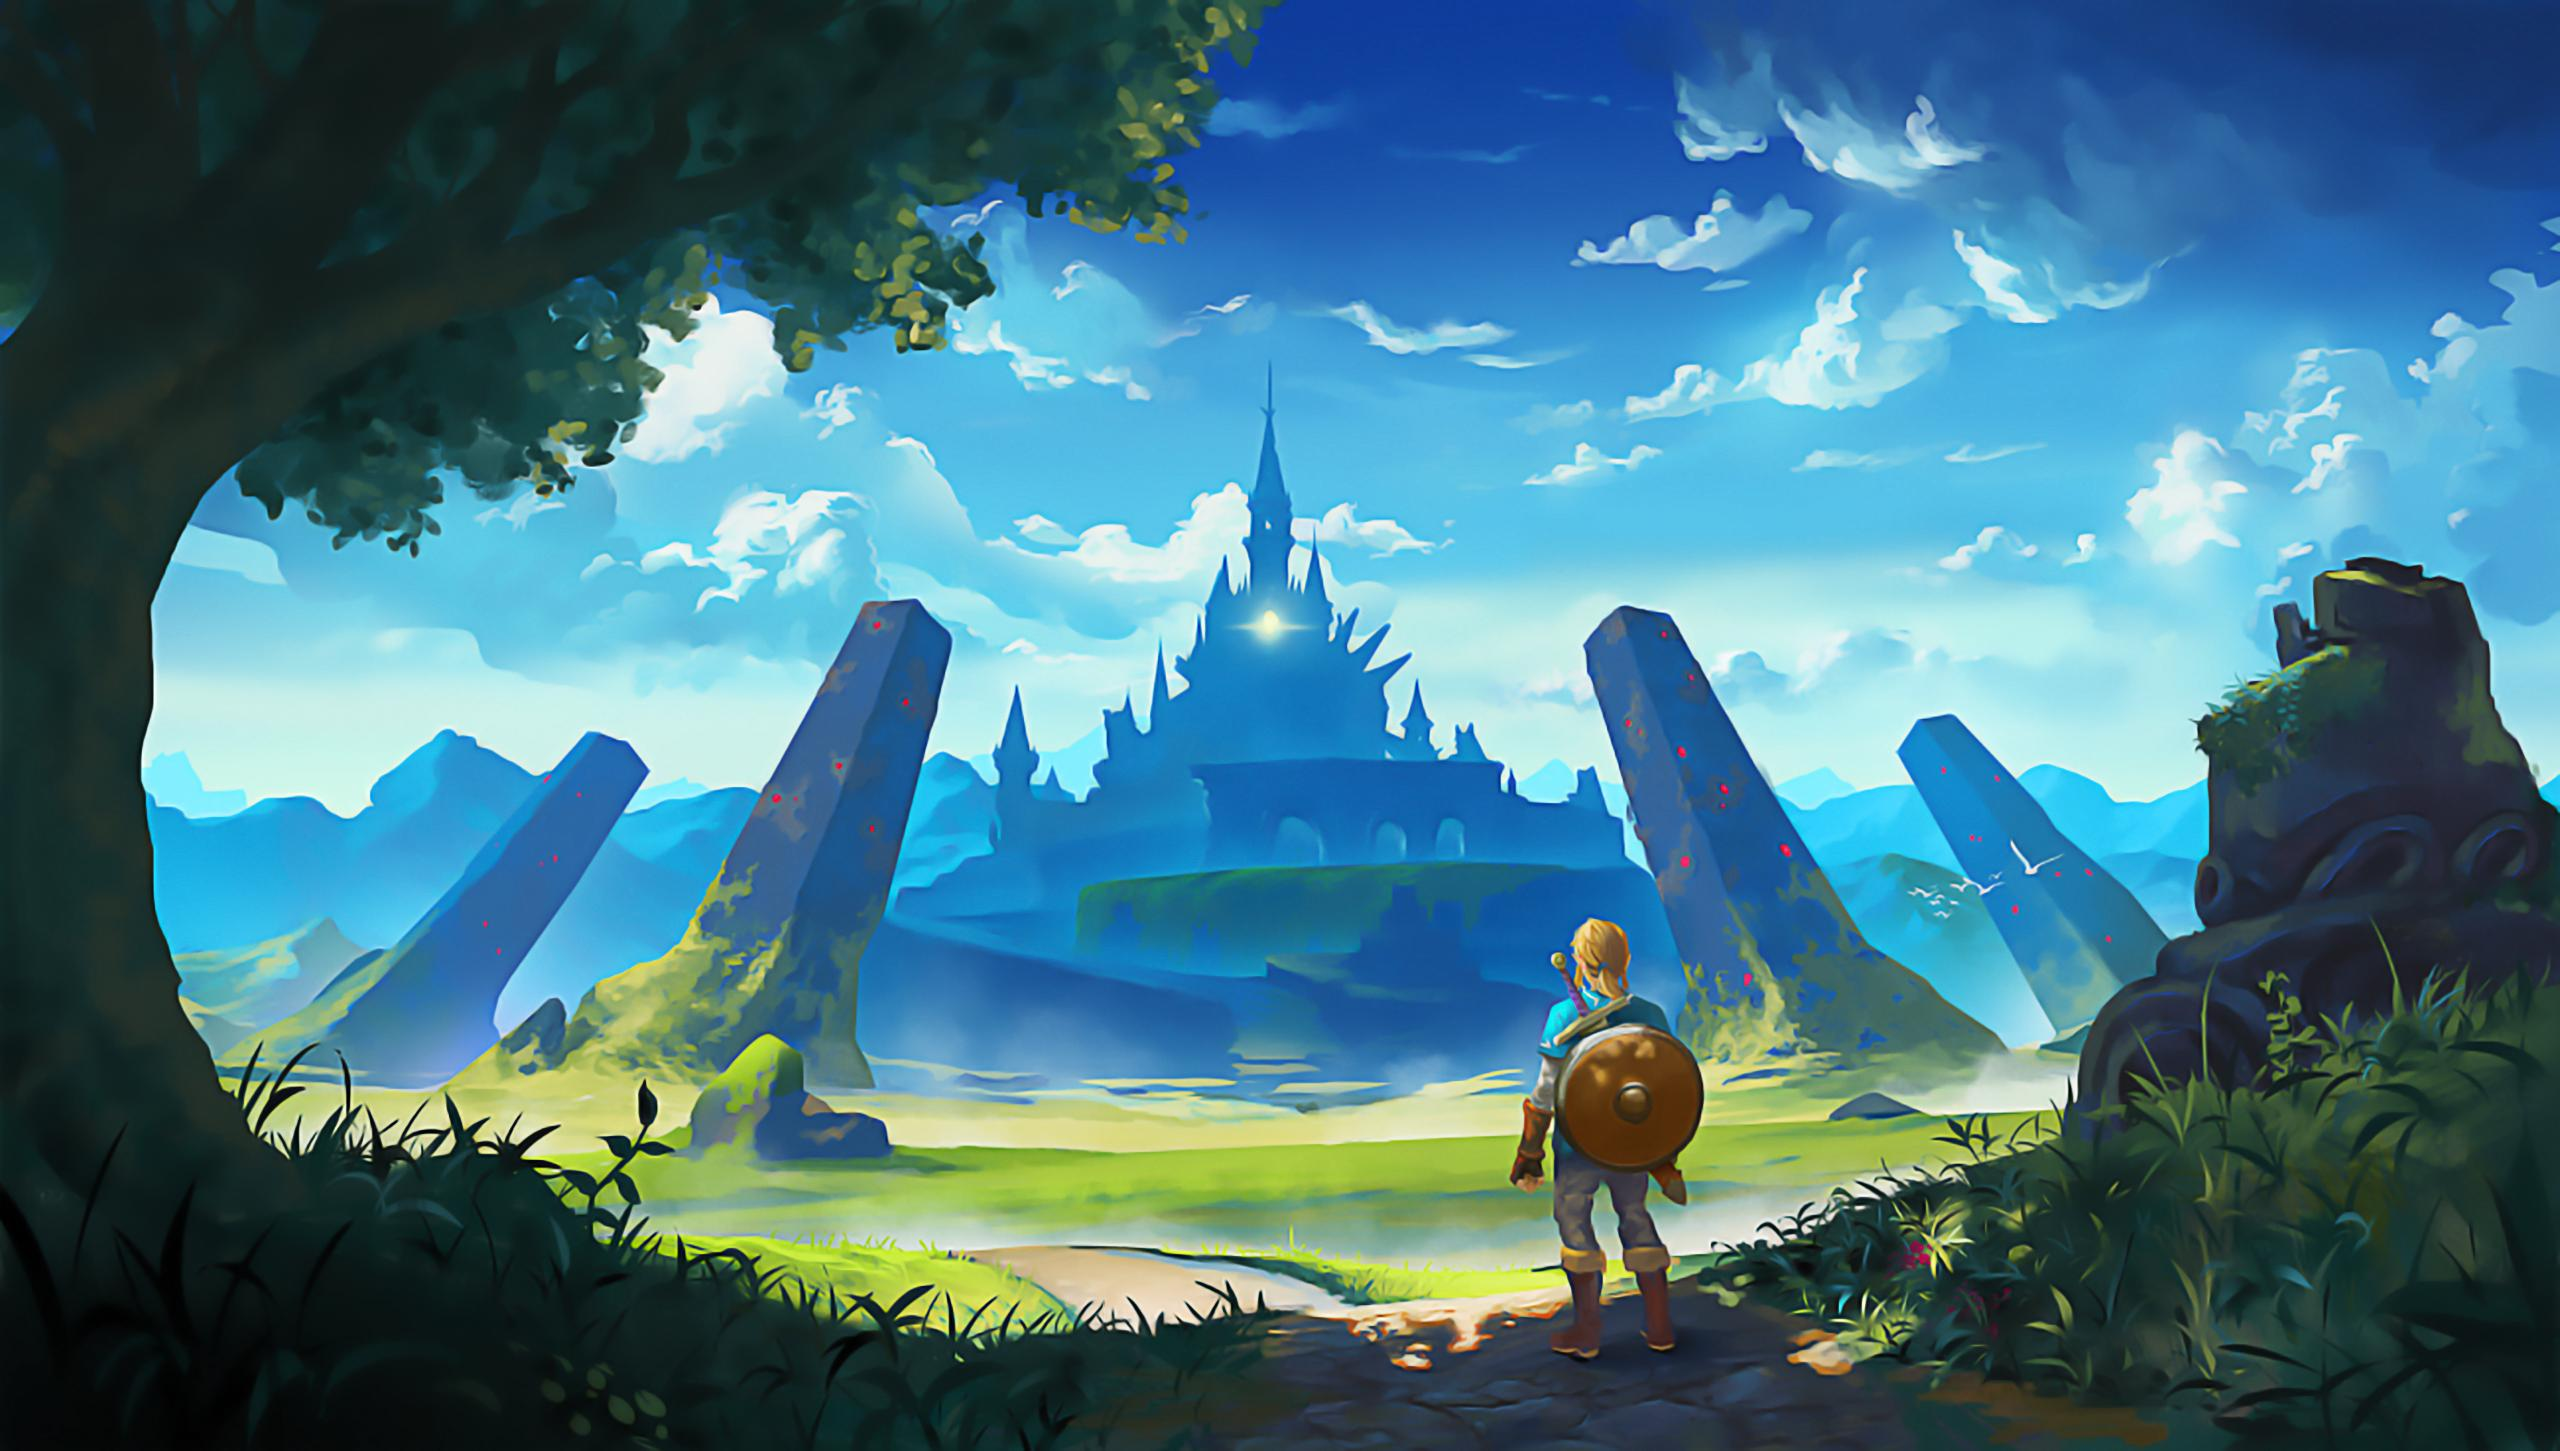 Legend Of Zelda Wallpaper For Android Apk Download